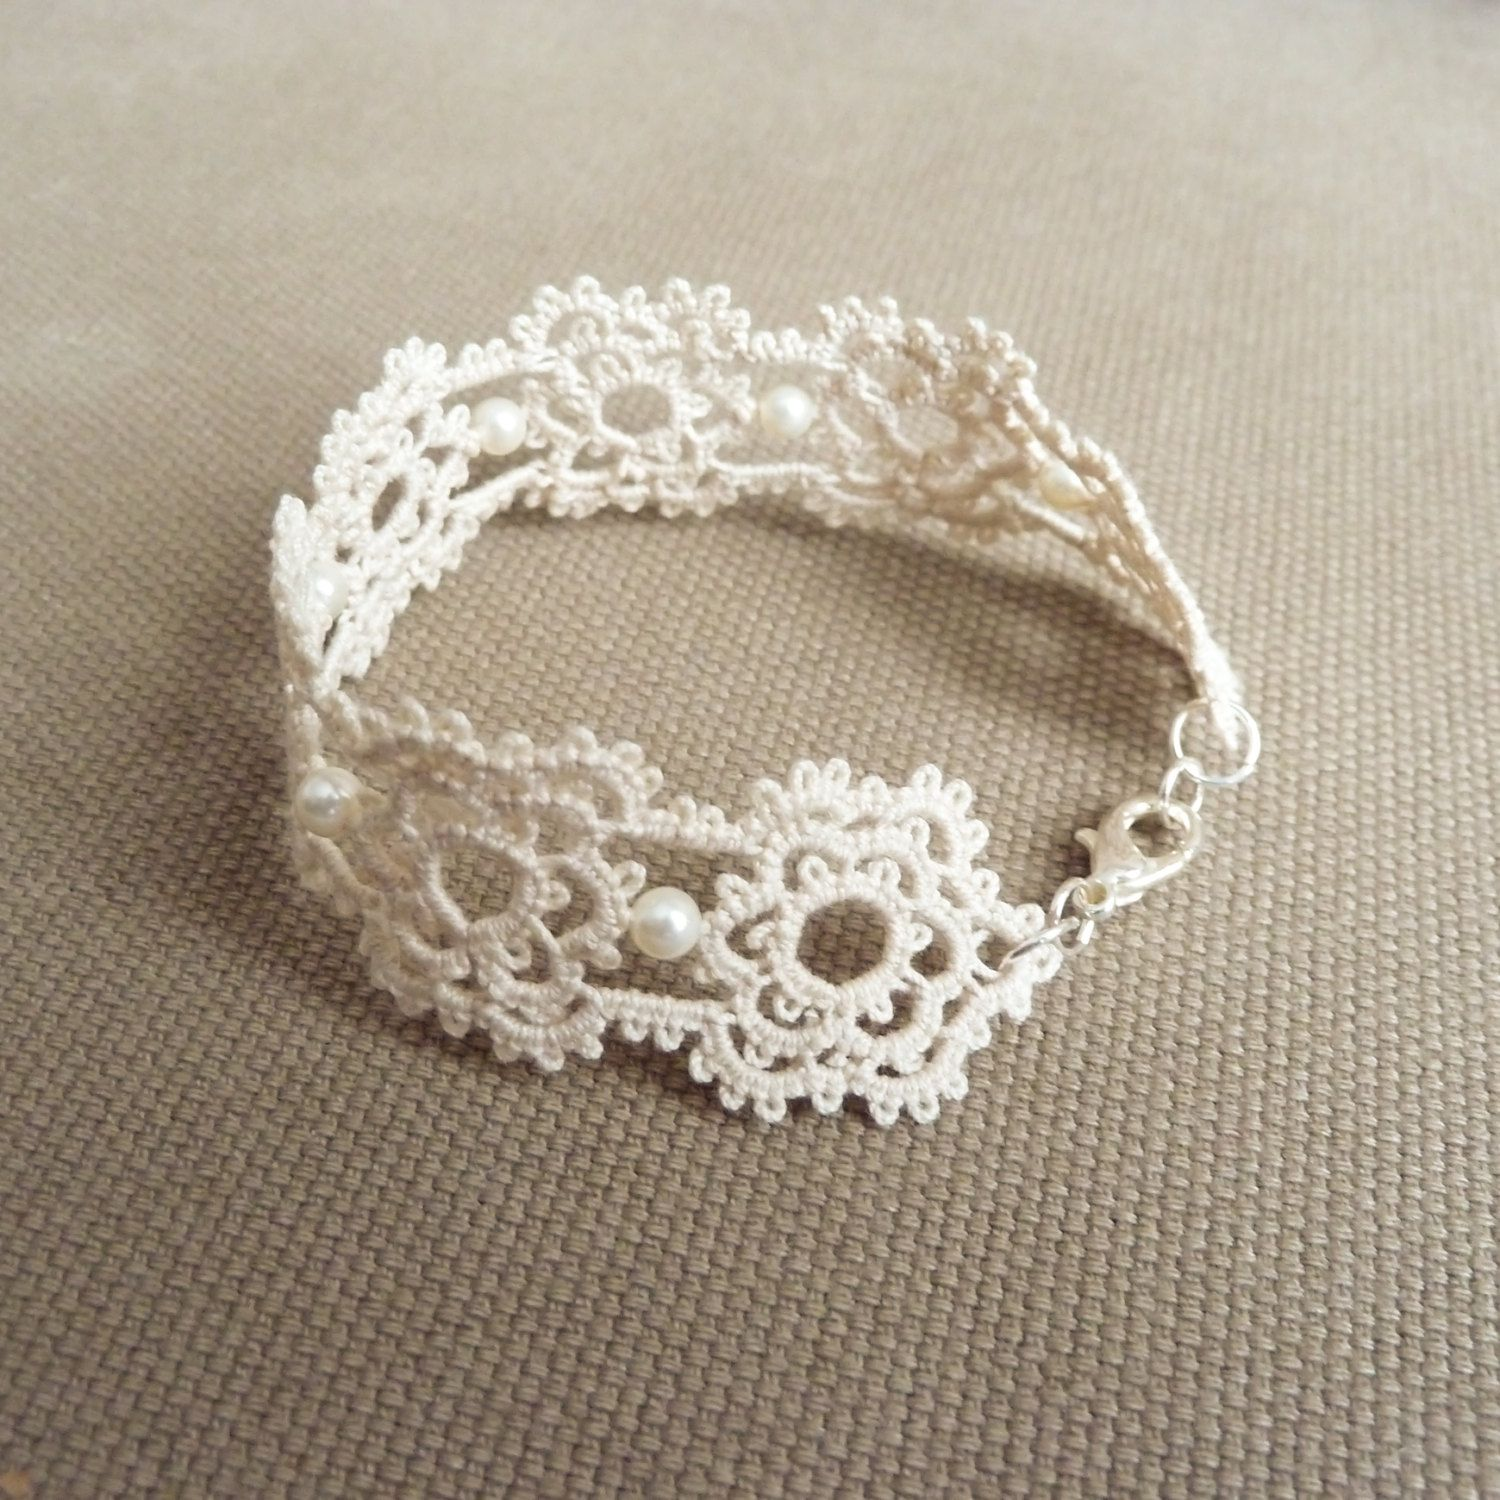 jewellery day bellagio jules delicate products bracelets bracelet pearl bridal ivory wedding